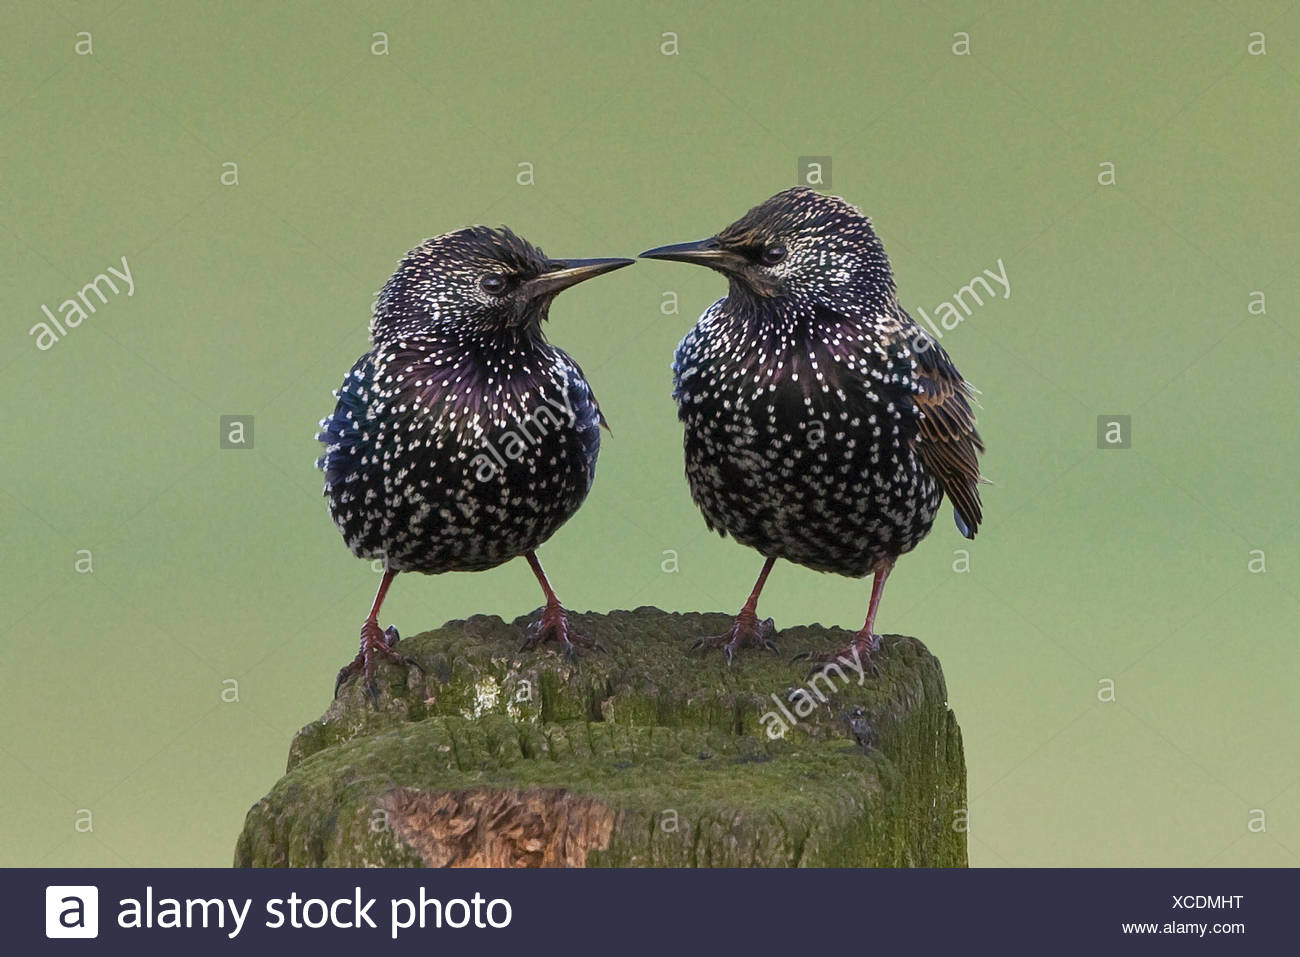 duo of Starlings looking at each other - Stock Image